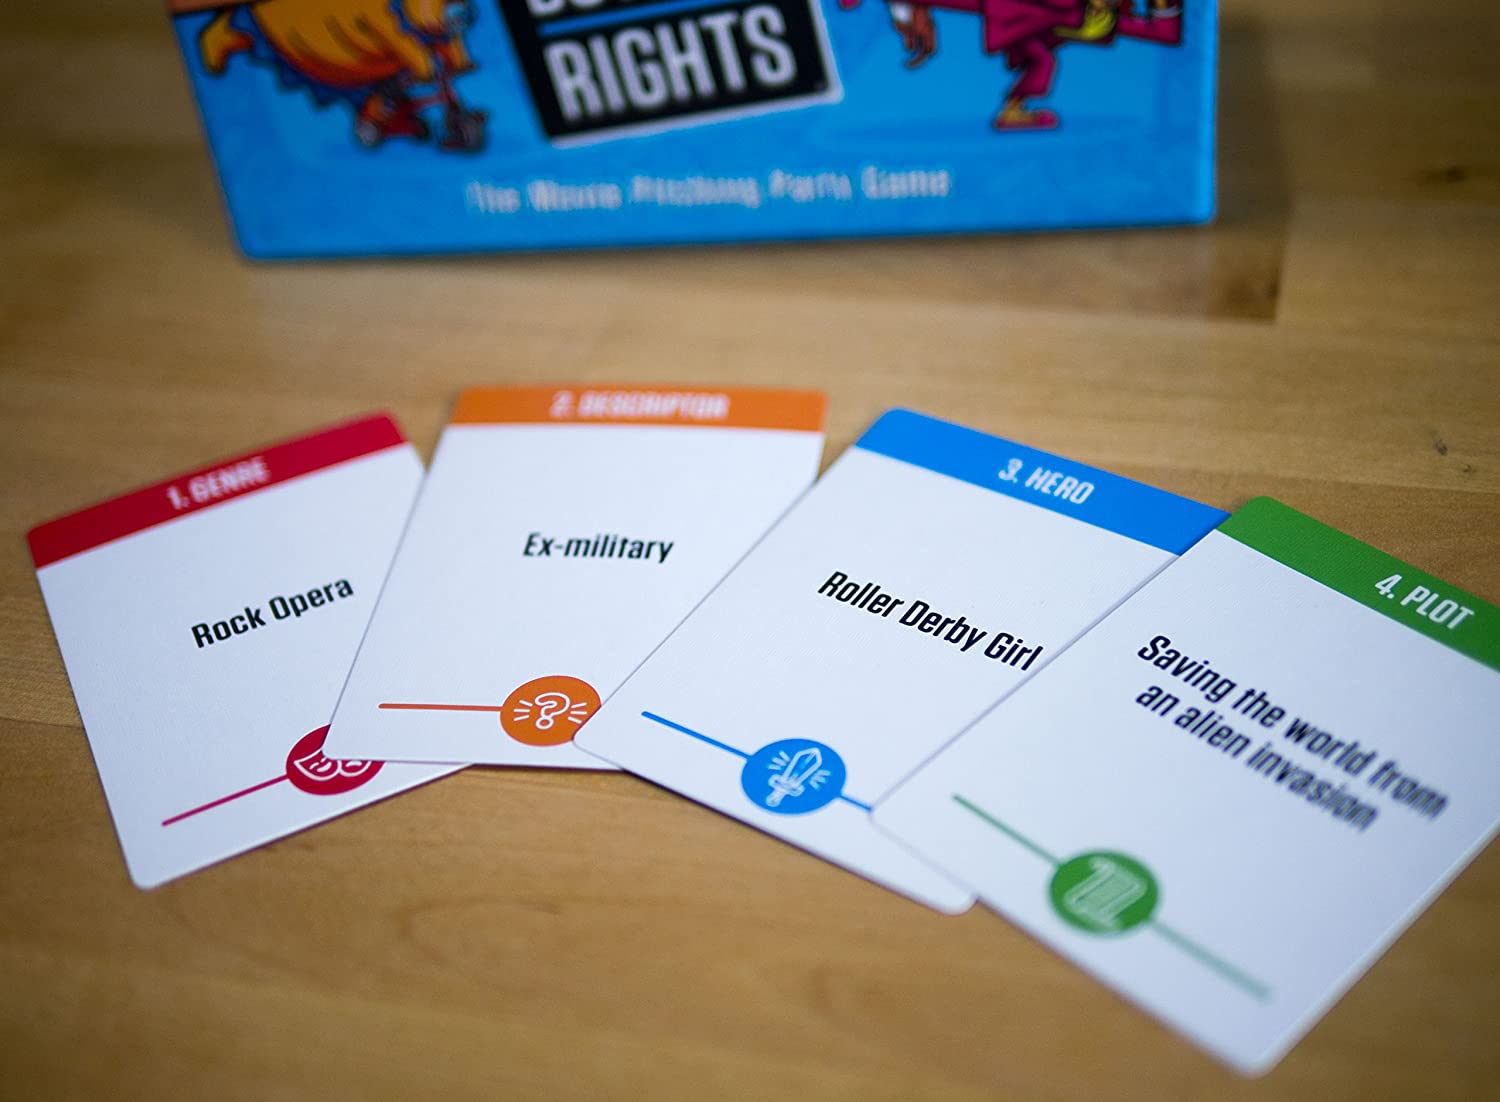 Amazon.com: Buy the Rights - The Movie Pitching Party Game: Toys ...